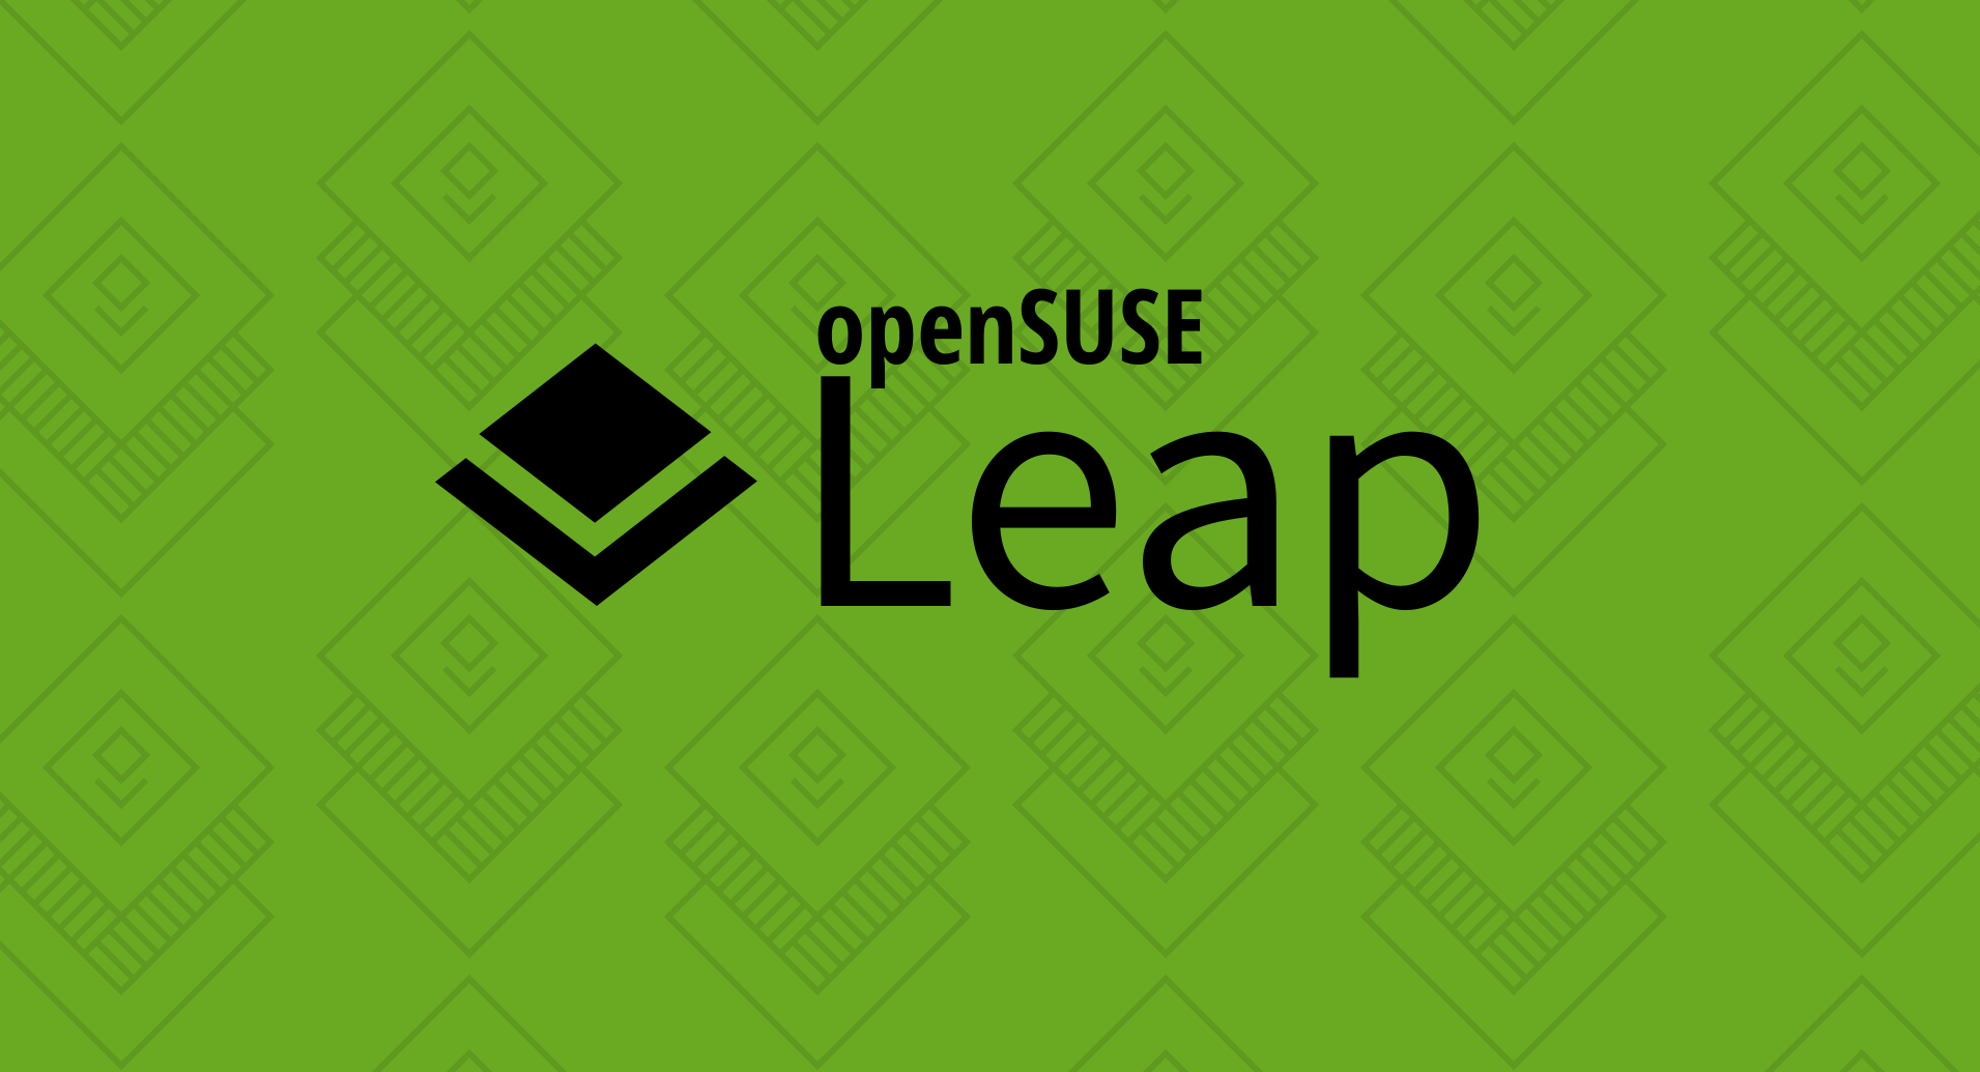 openSUSE Leap 15.2 Enters Release Candidate Phase